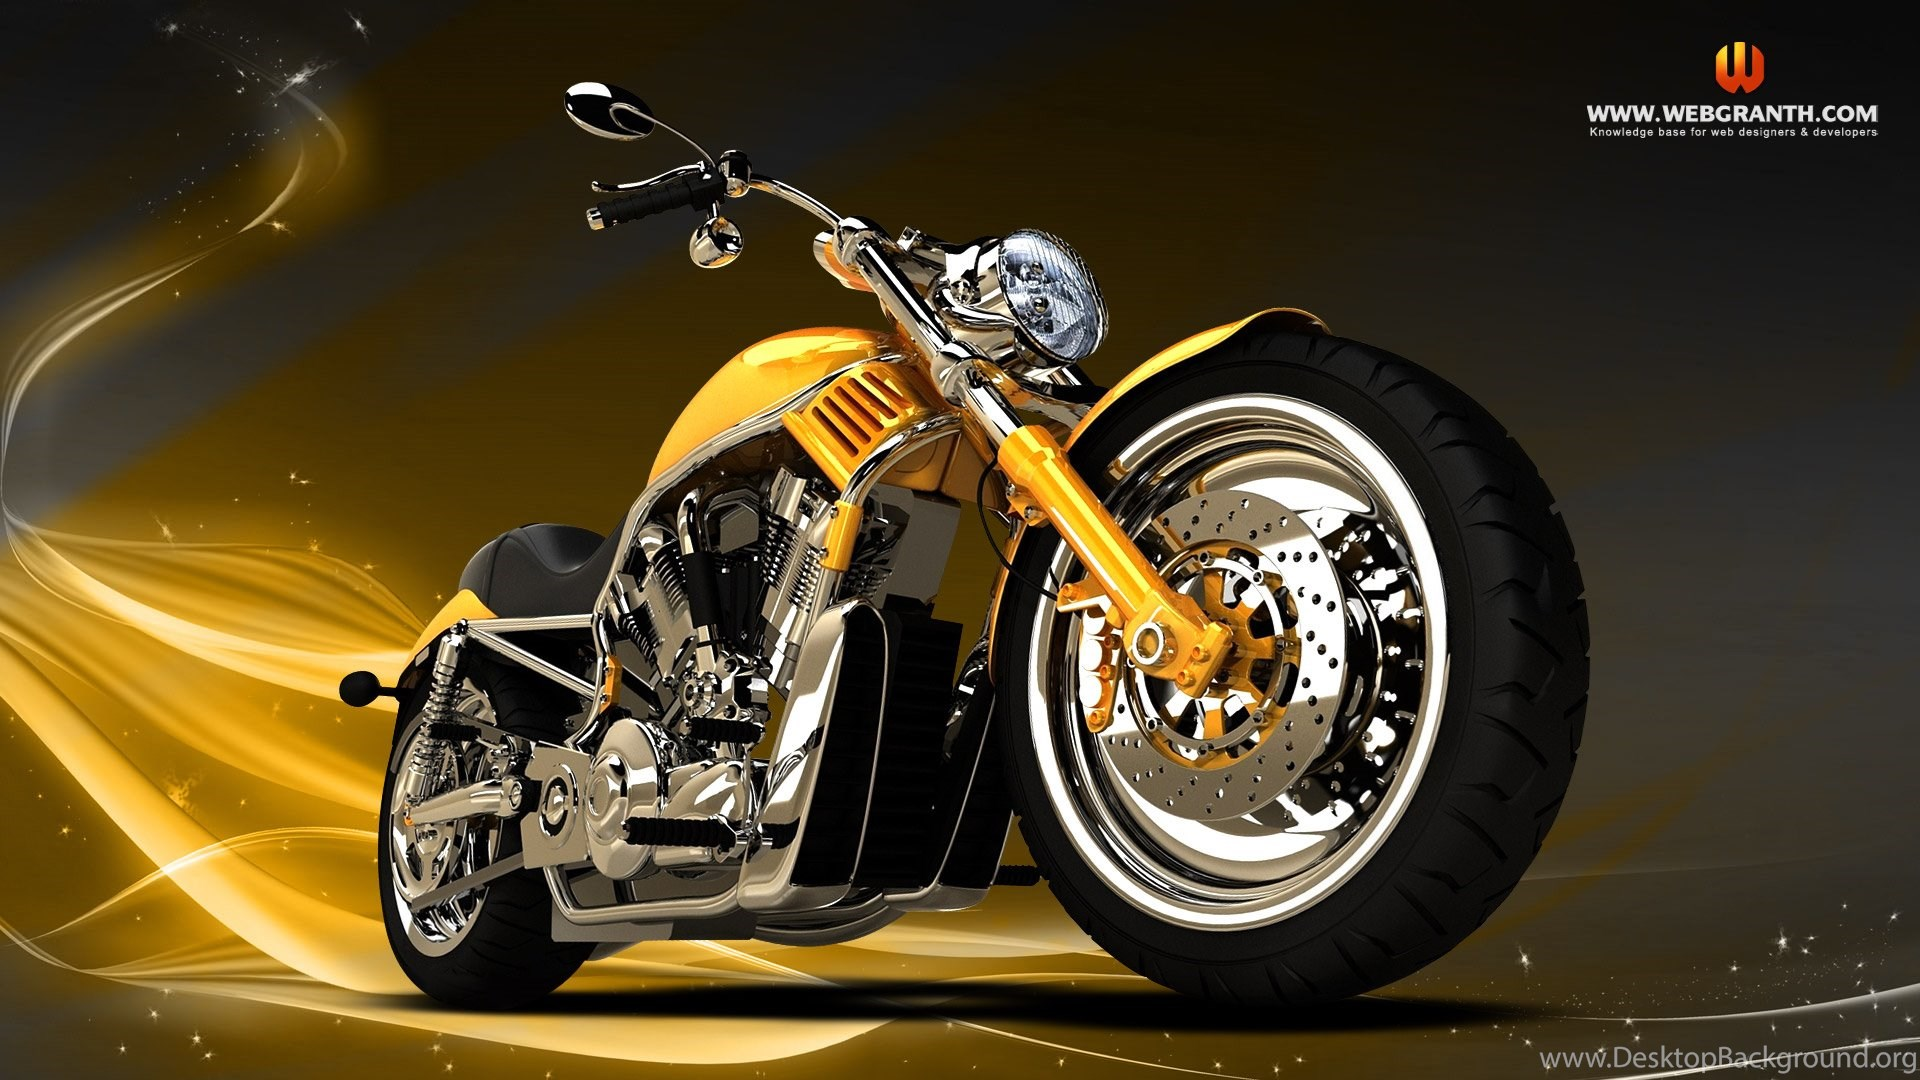 Bikes HQ Wallpapers HD High Definition